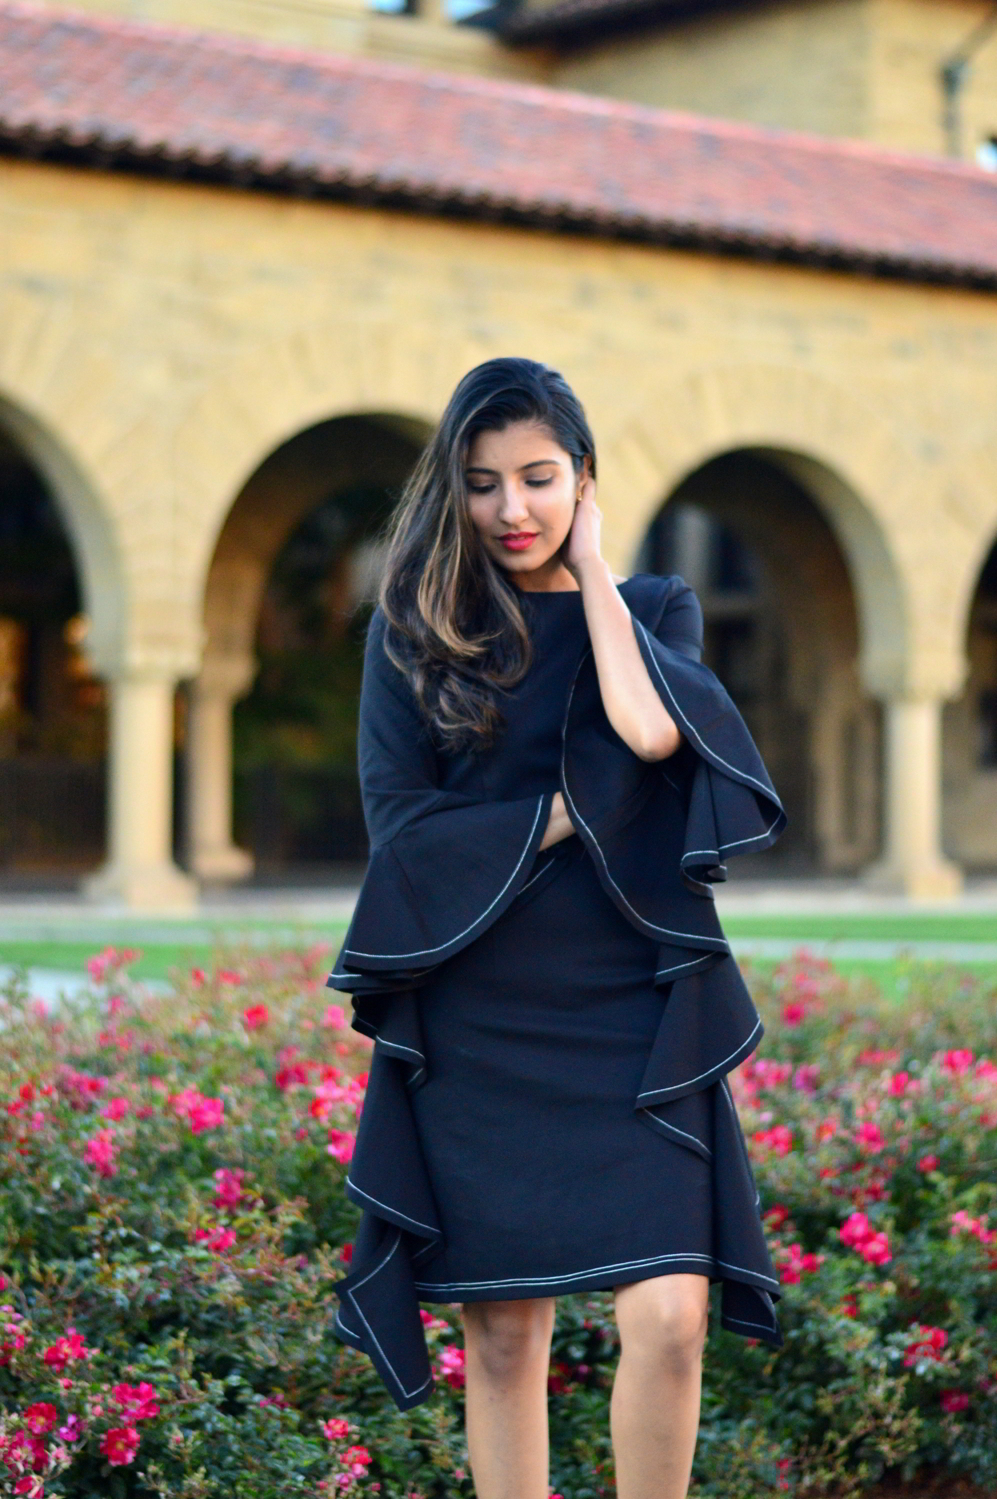 little-black-dress-bell-sleeves-holiday-season-mules-blogger-outfit-style 2